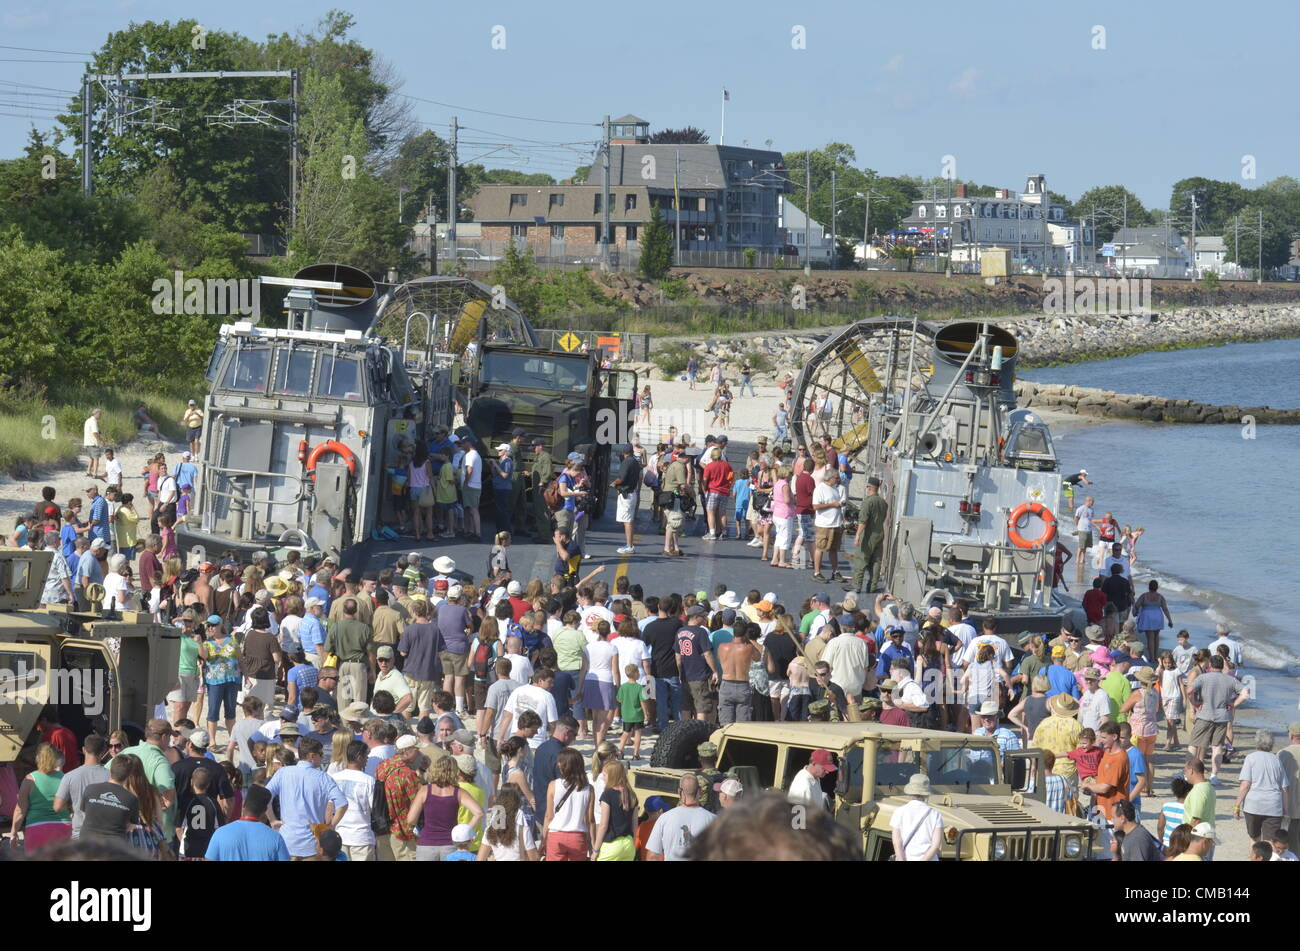 Niantic, Connecticut, July 6, 2012 -Crowds gather at Hole-in-the-Wall Beach for a chance to explore a US Navy LCAC - Stock Image